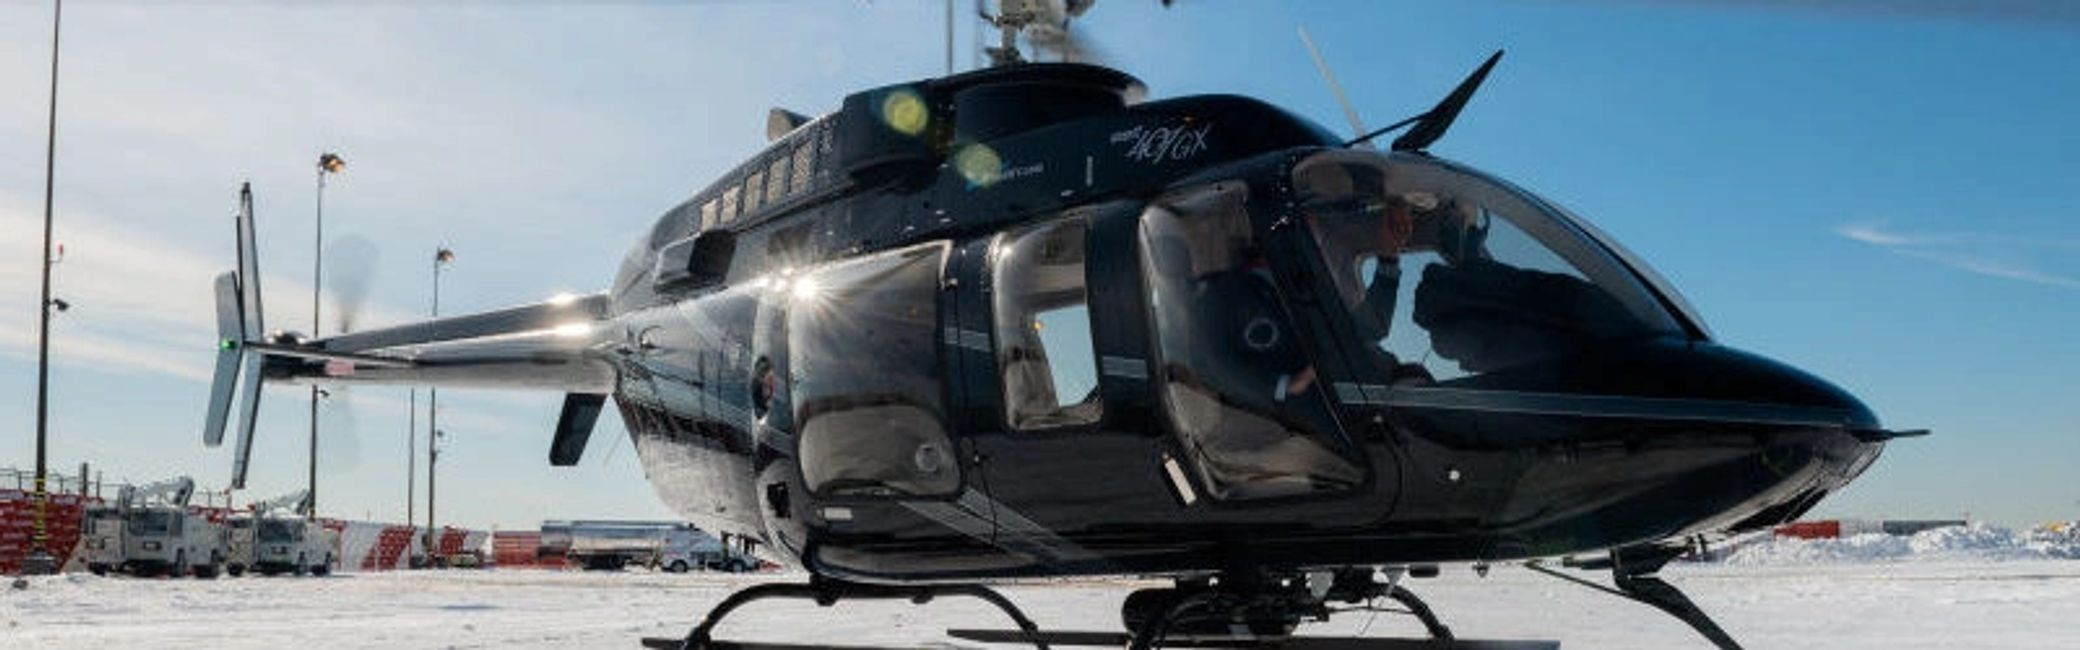 Helicopters | Victoria Helicopters